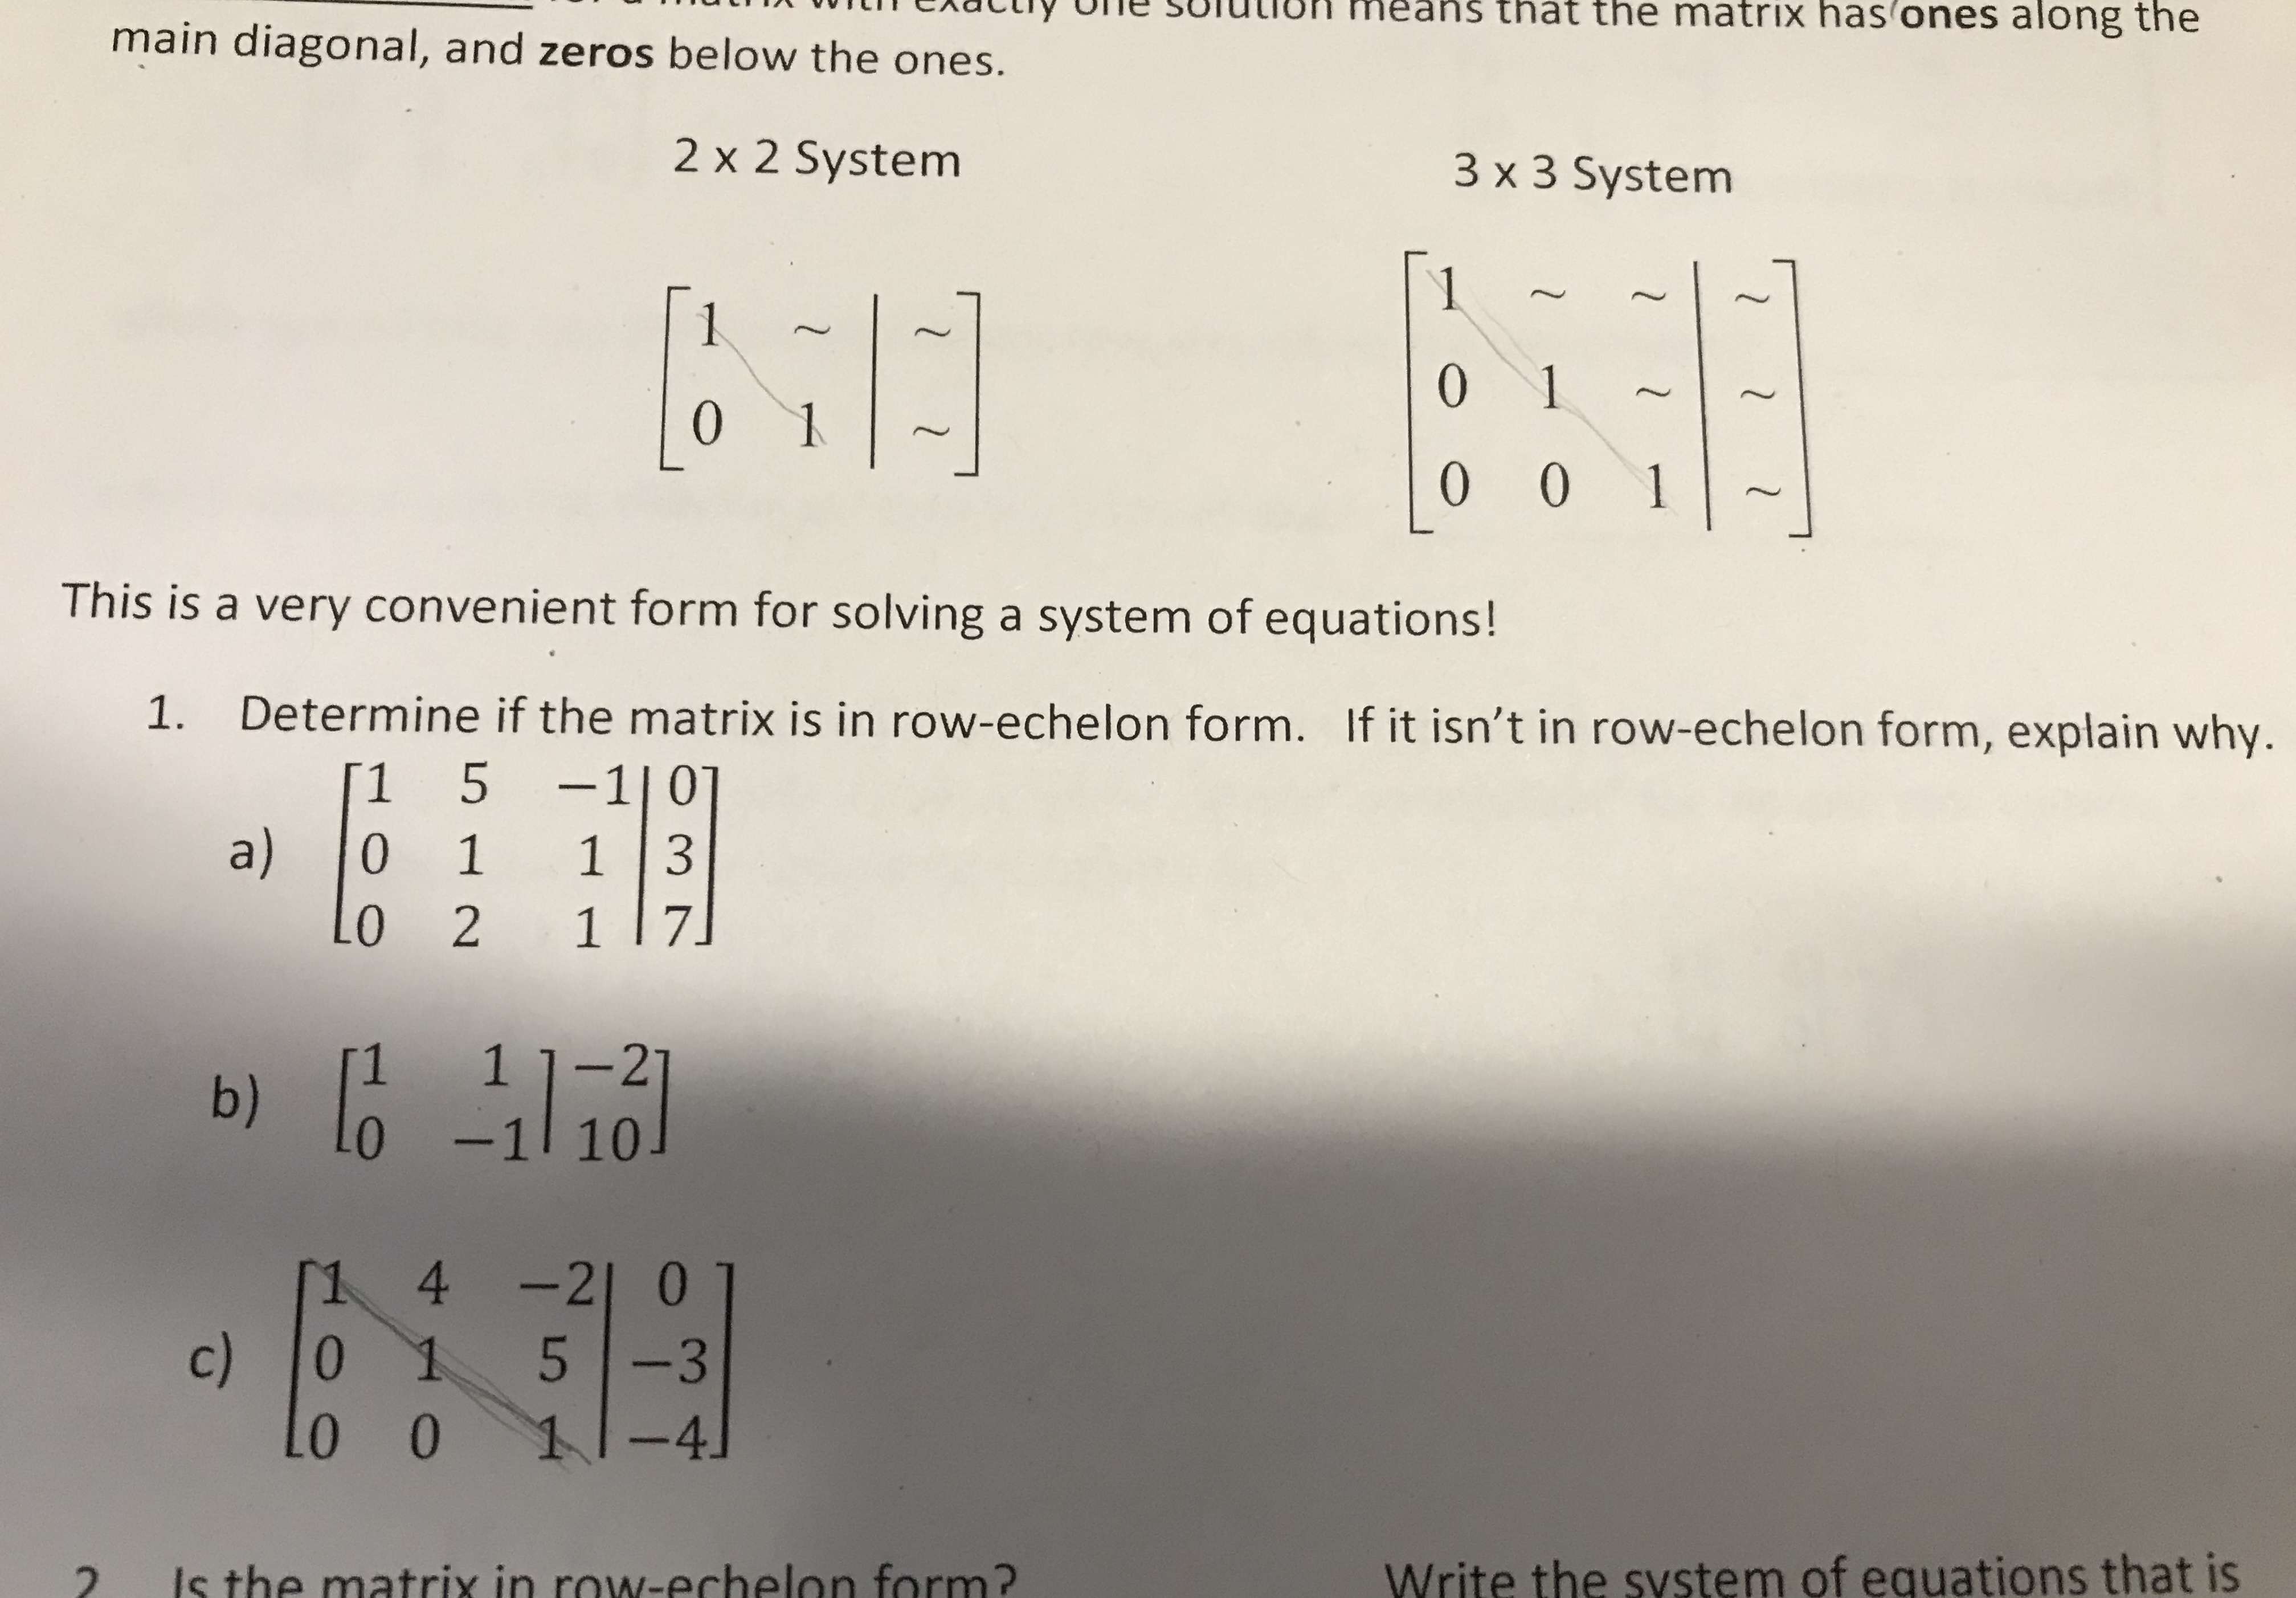 s that the matrix has ones along the main diagonal, and zeros below the ones. 2 x 2 System 3 x 3 System 1 1 0 1 0 0 0 1 This is a very convenient form for solving a system of equations! Determine if the matrix is in row-echelon form. If it isn't in row-echelon form, explain why. 1. -1 | 0 1 3 5 1 a) 0 1 1 7 0 2 1 1-21 b) -1 10 1 4-21 0 c) L0 0 0 -3 11-4 Write the system of equations that is Is the matrix in rowN-echelon form? 2 1 l 1 2